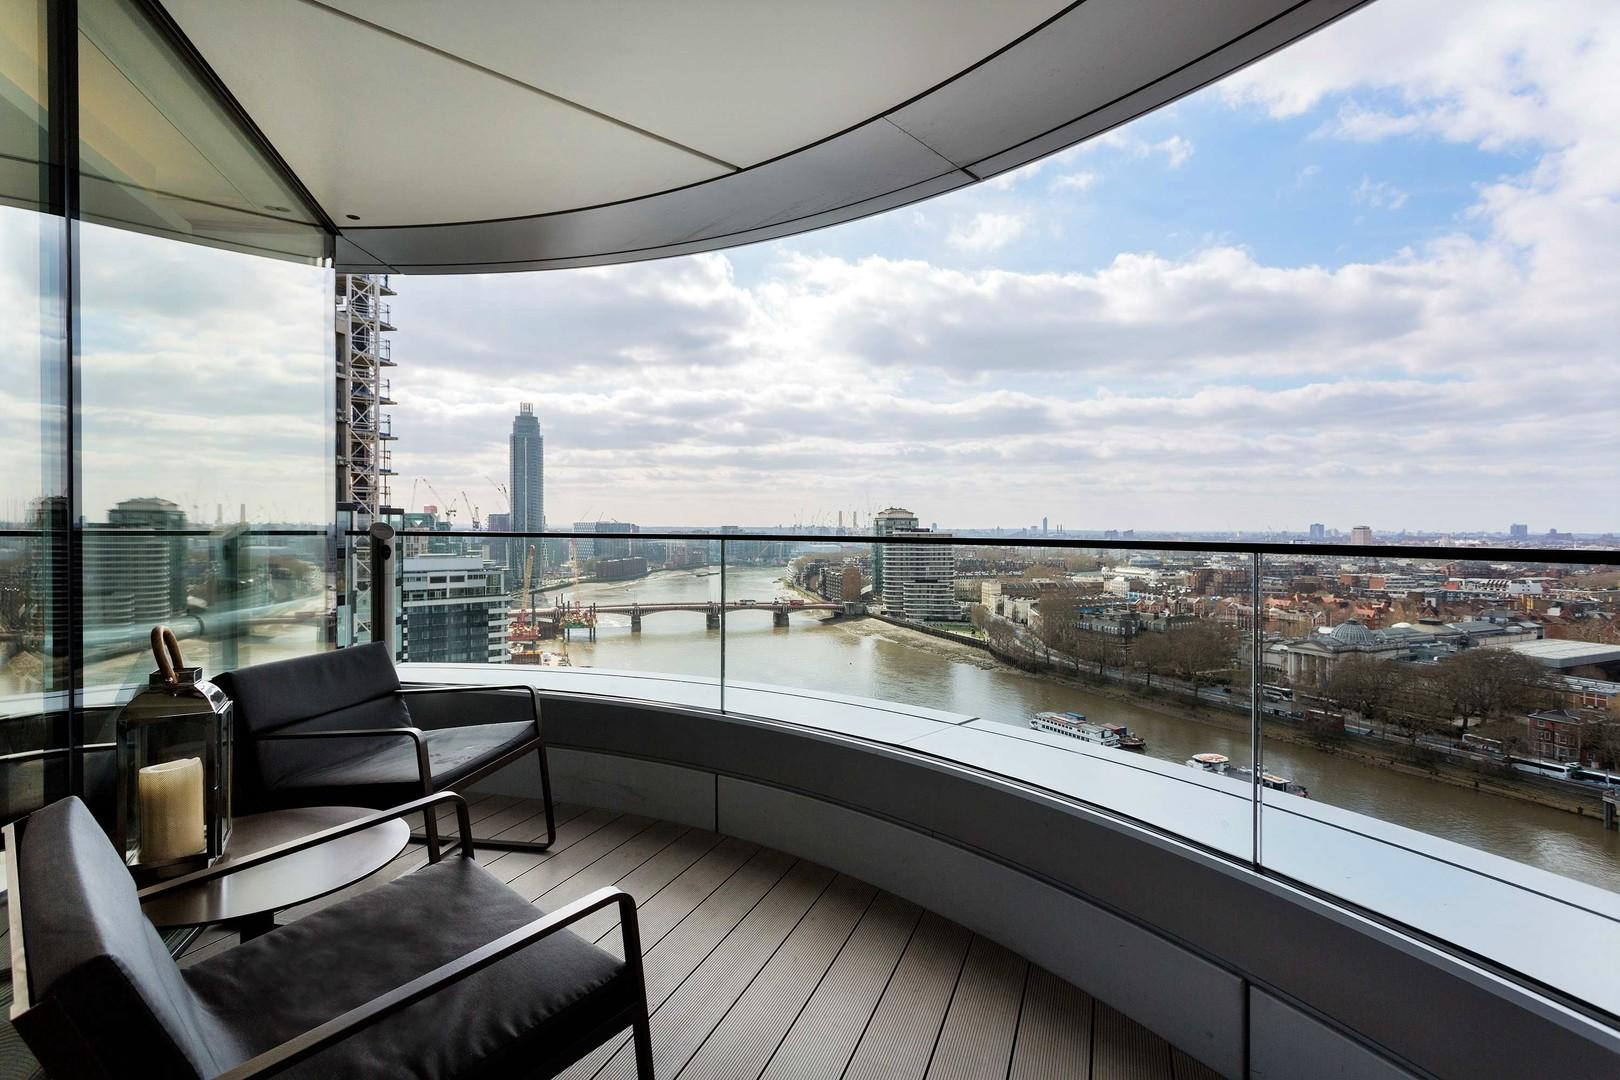 Property Image 1 - Modern Chic Riverside Apartment with Panoramic Views